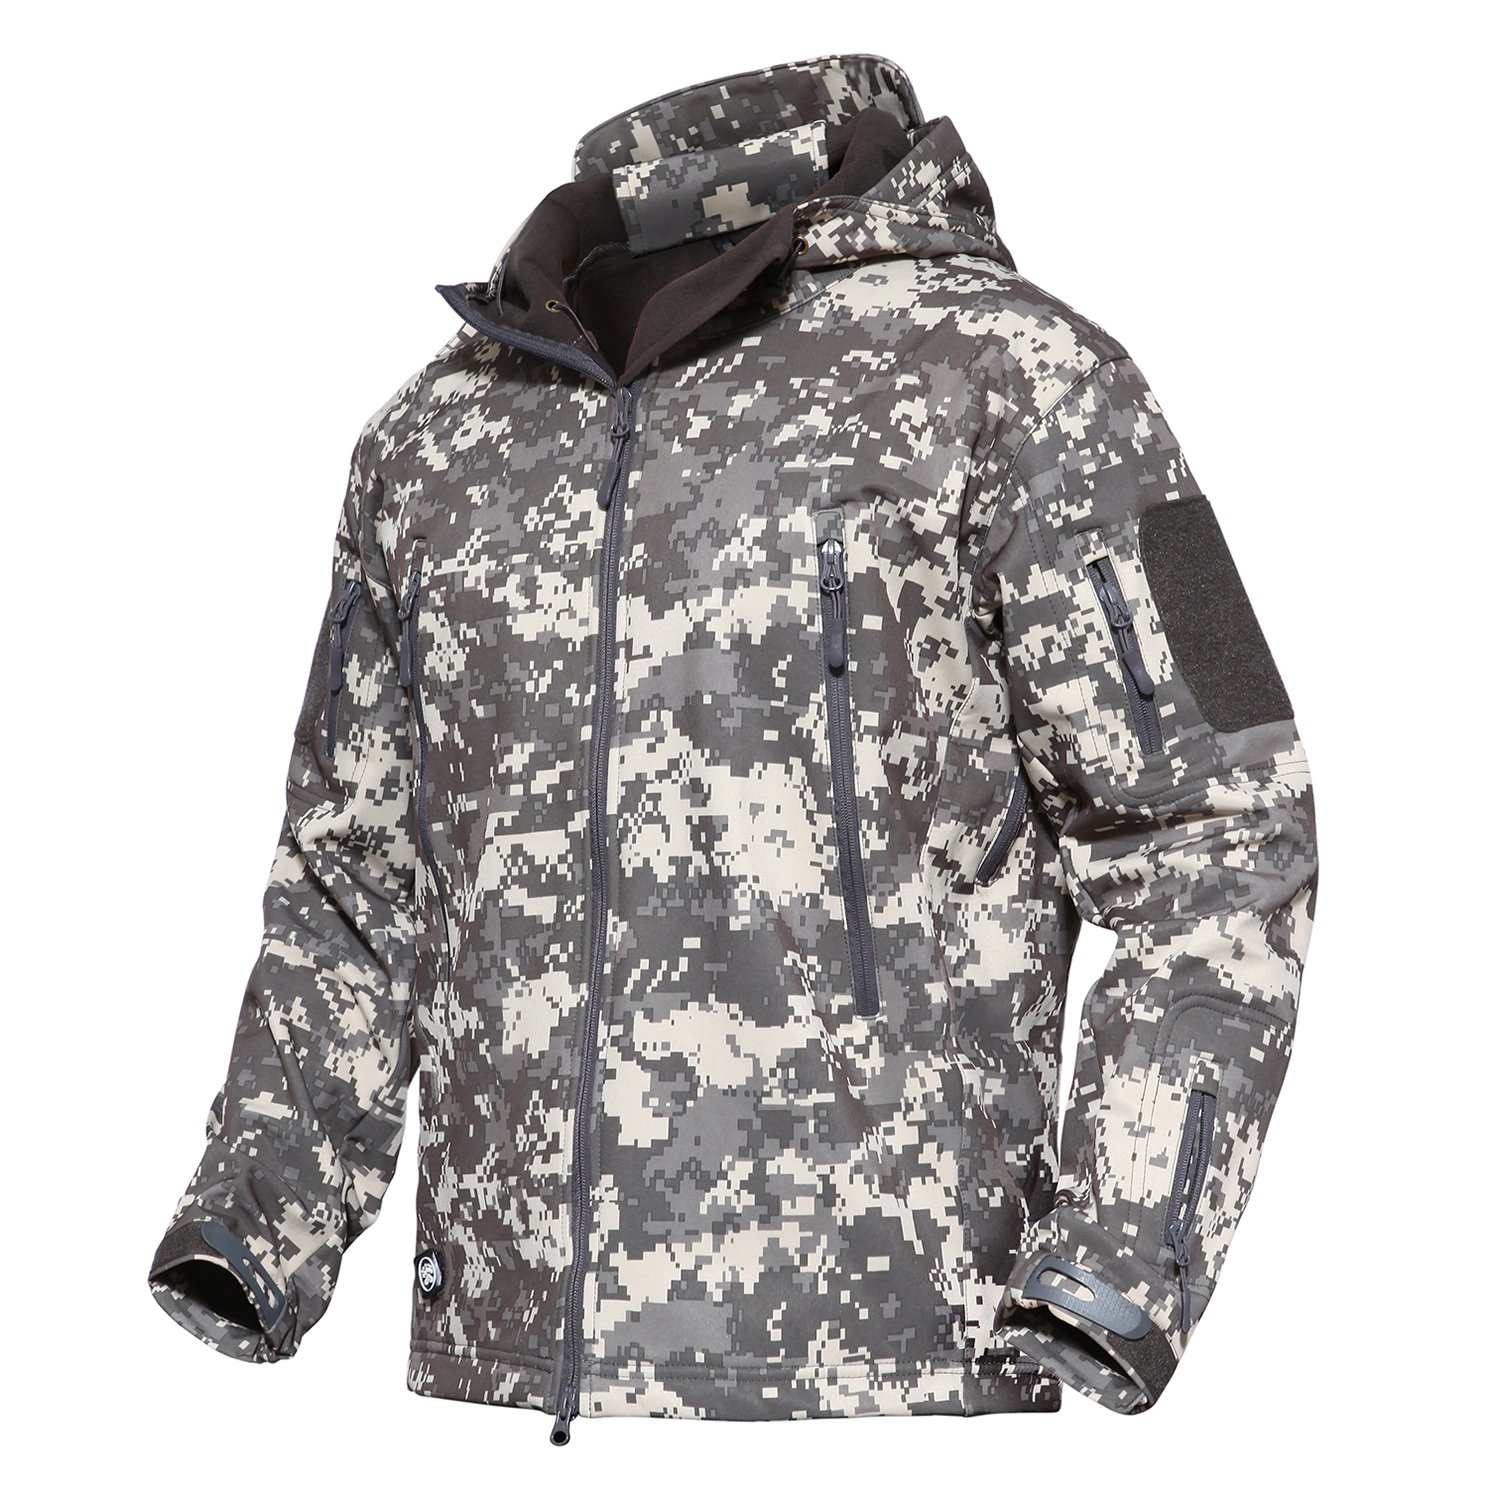 MAGCOMSEN OUTERWEAR メンズ B076PZ5NXL US L (Fit Chest 39